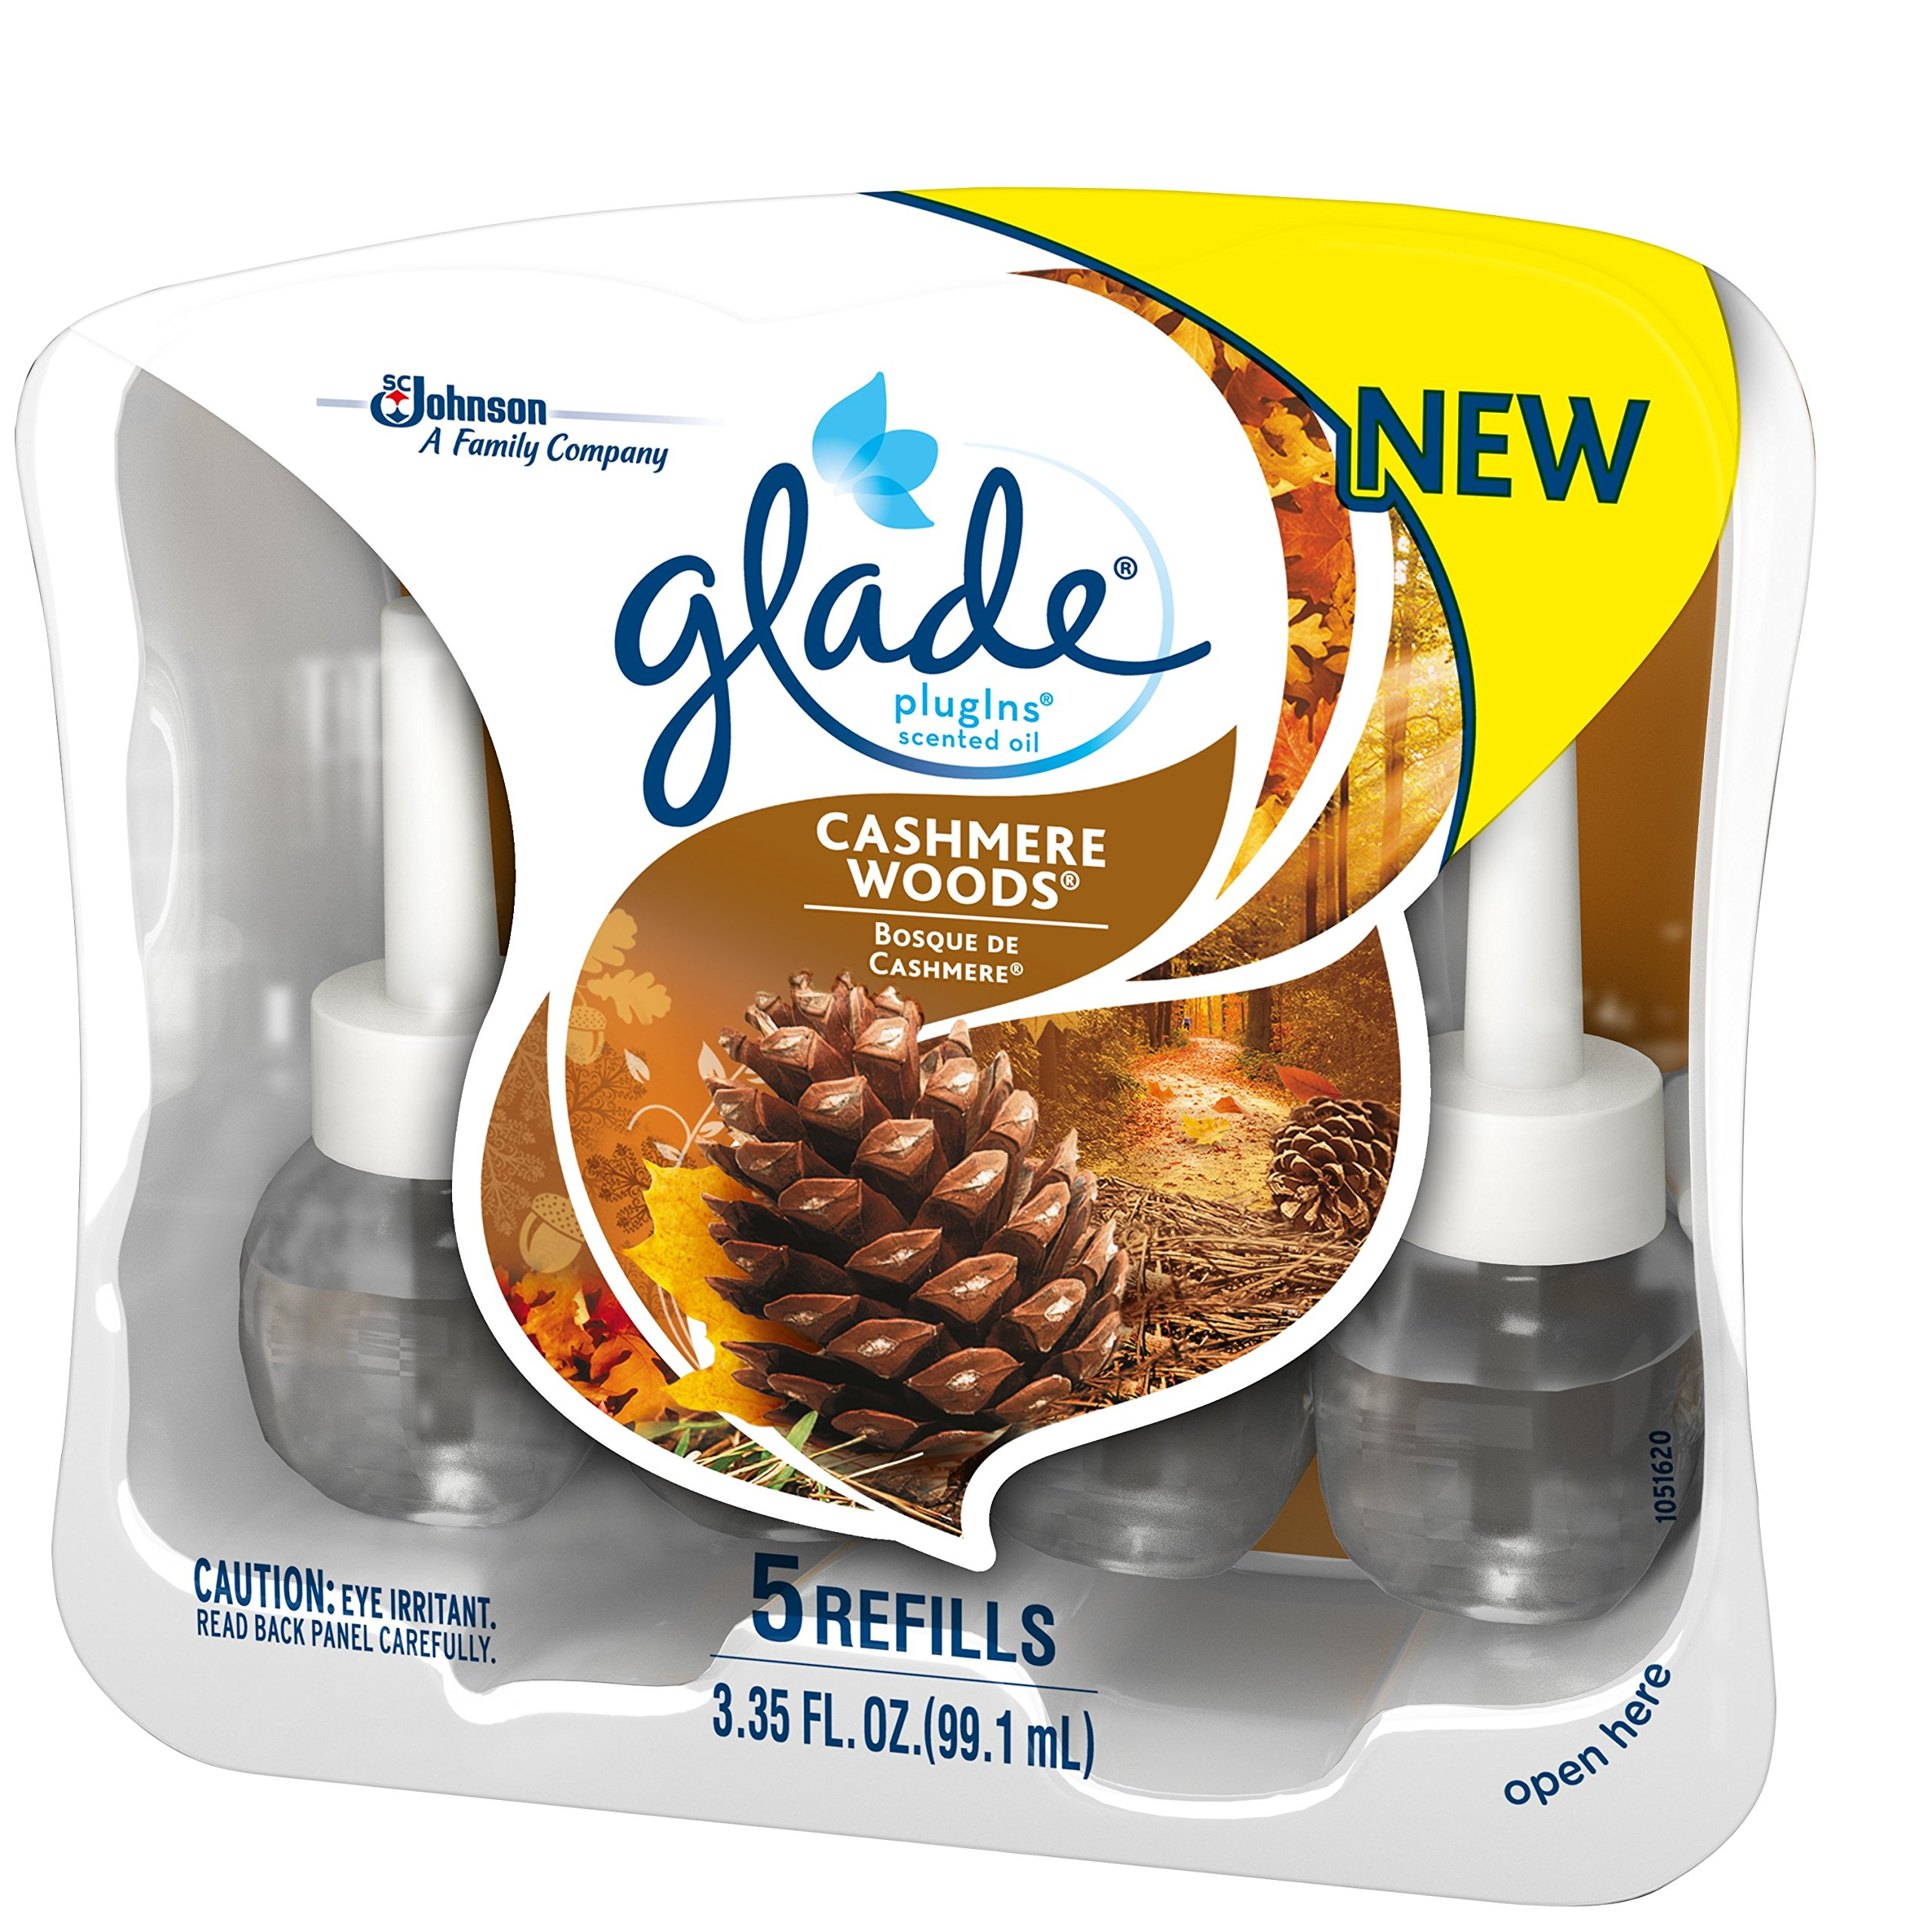 Glade Plugins Scented Oil Air Freshener Refill, Cashmere Woods, 5 Count by Glade (Image #2)